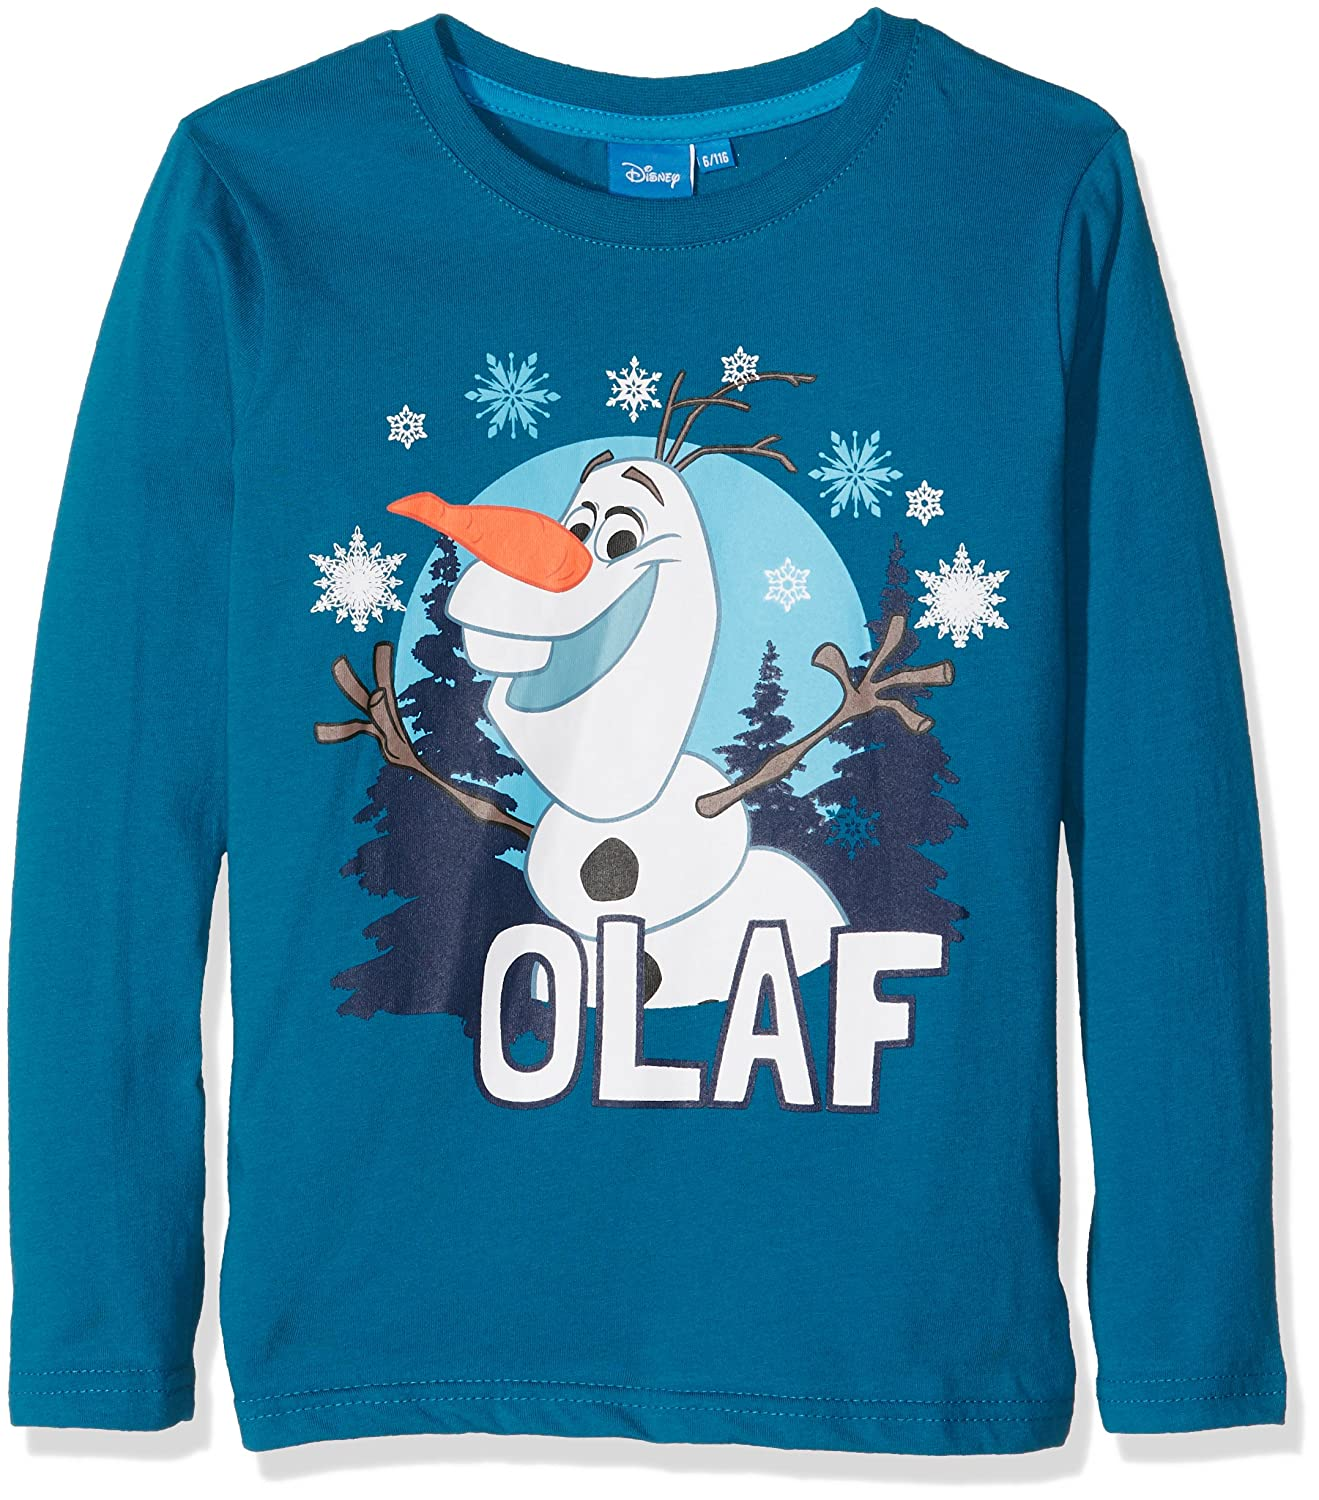 La Reine des Neiges Frozen Boy's Fzol46103 Sweater